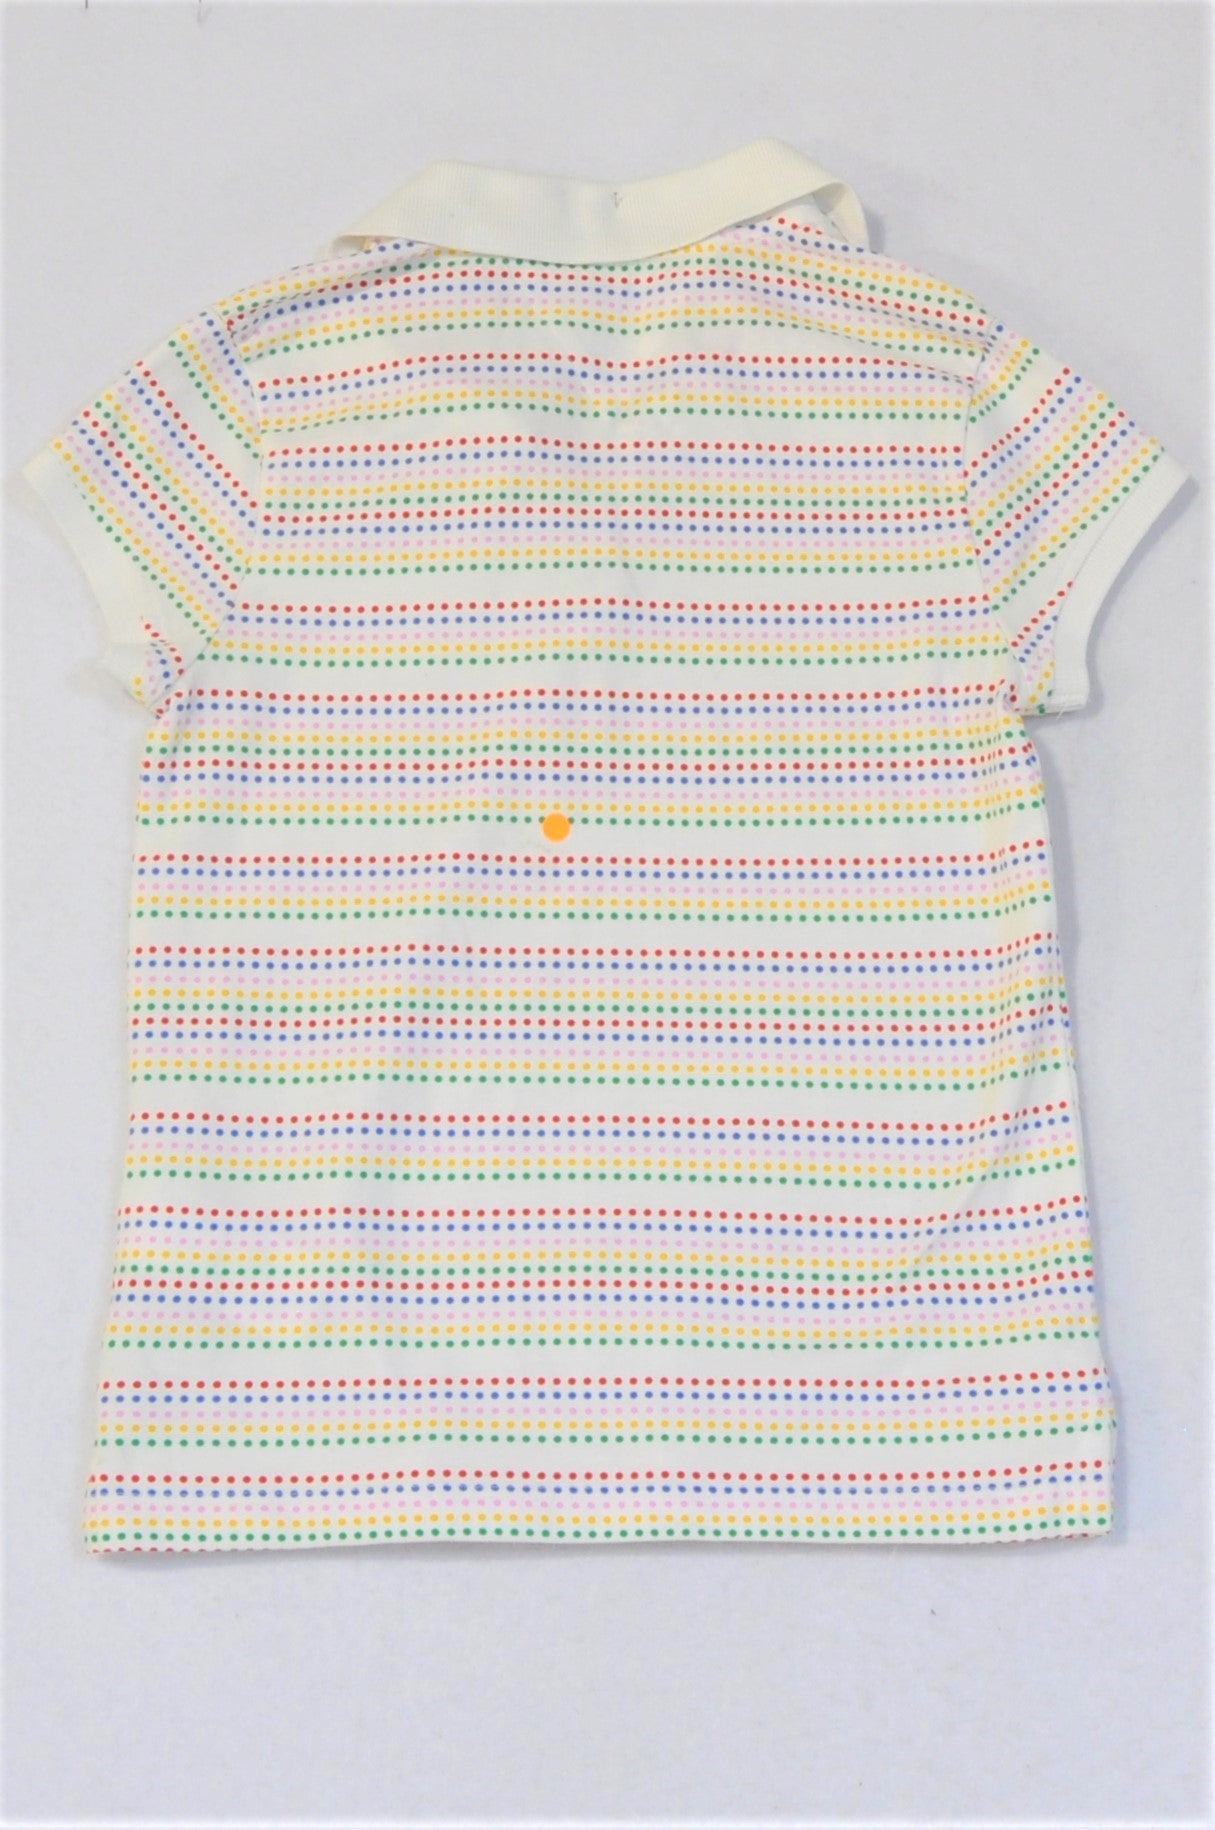 Tommy Hilfiger Colourful Dotty Stripes Collared T-shirt Girls 8-10 years